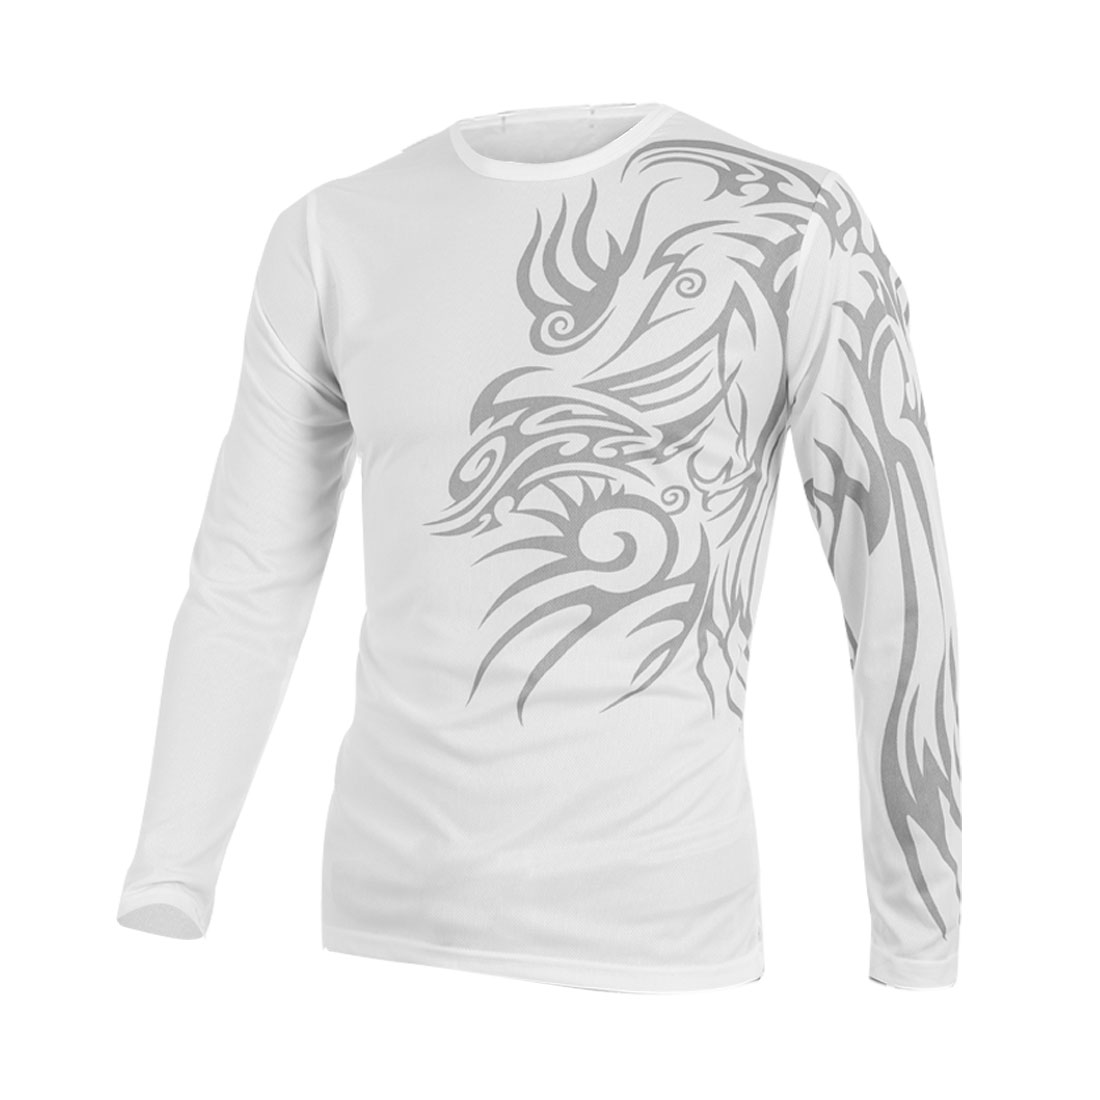 Men Round Neck Long Sleeve Tribal Pattern Style Shirt M White